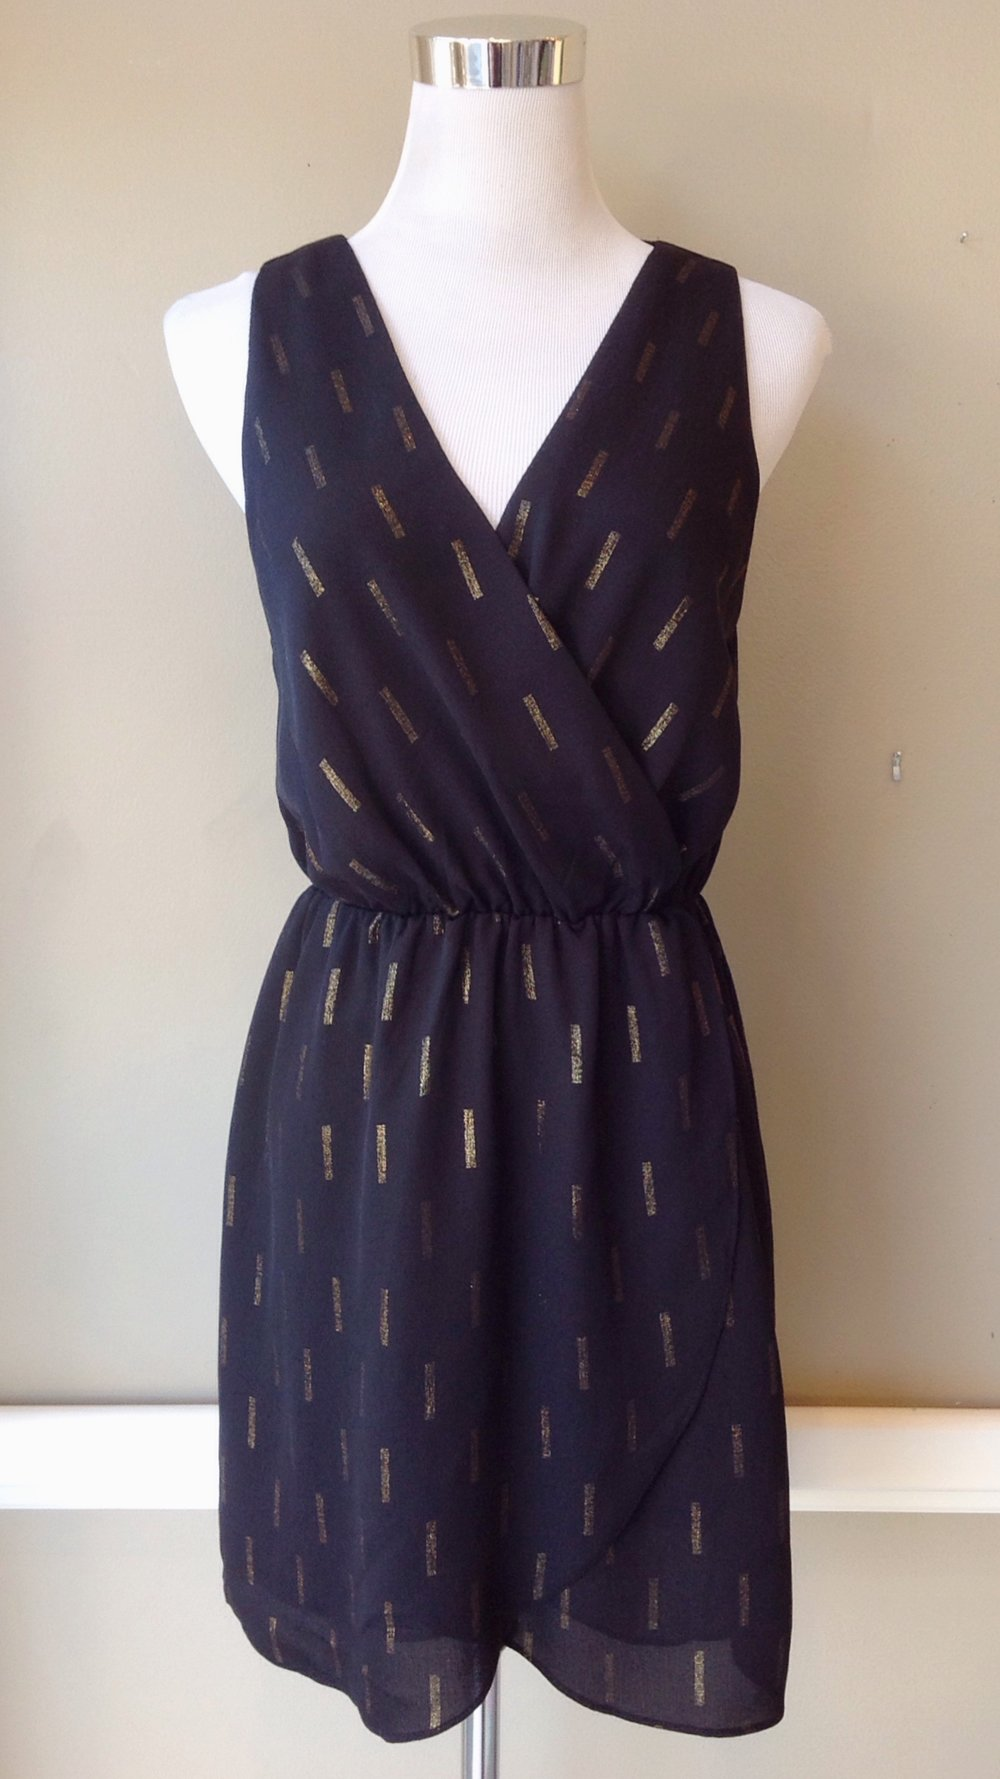 Black foil print surplice dress $48